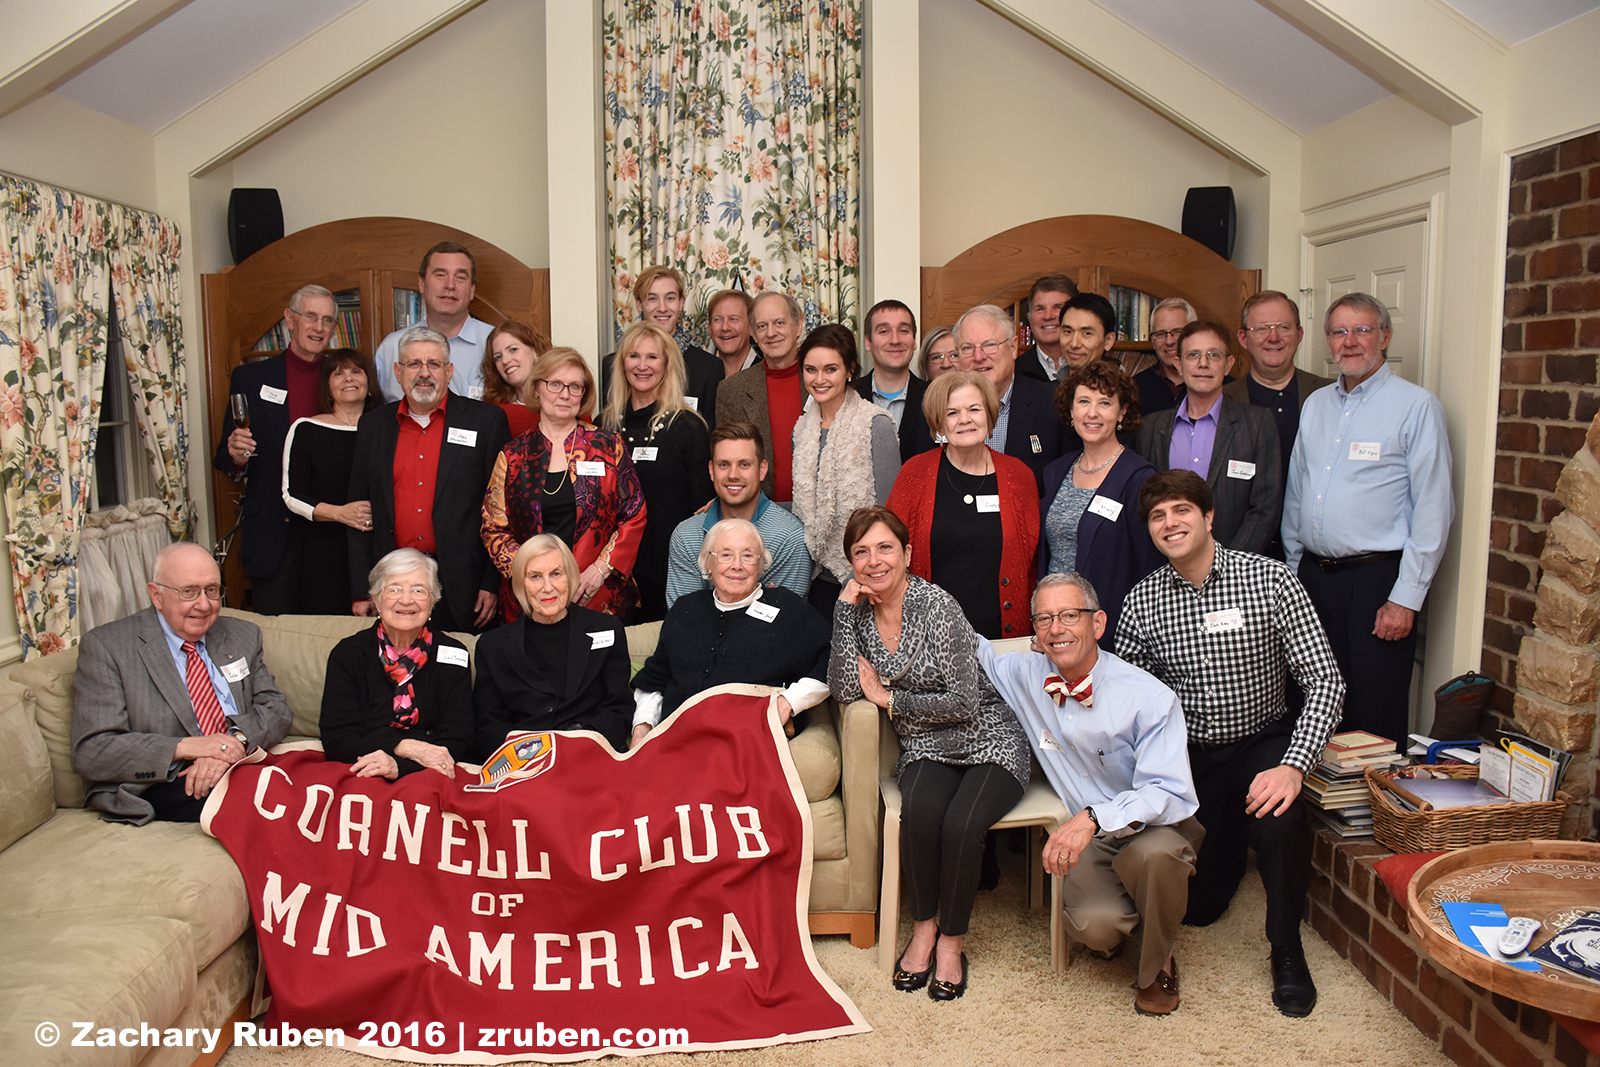 Cornell Club of Mid-America